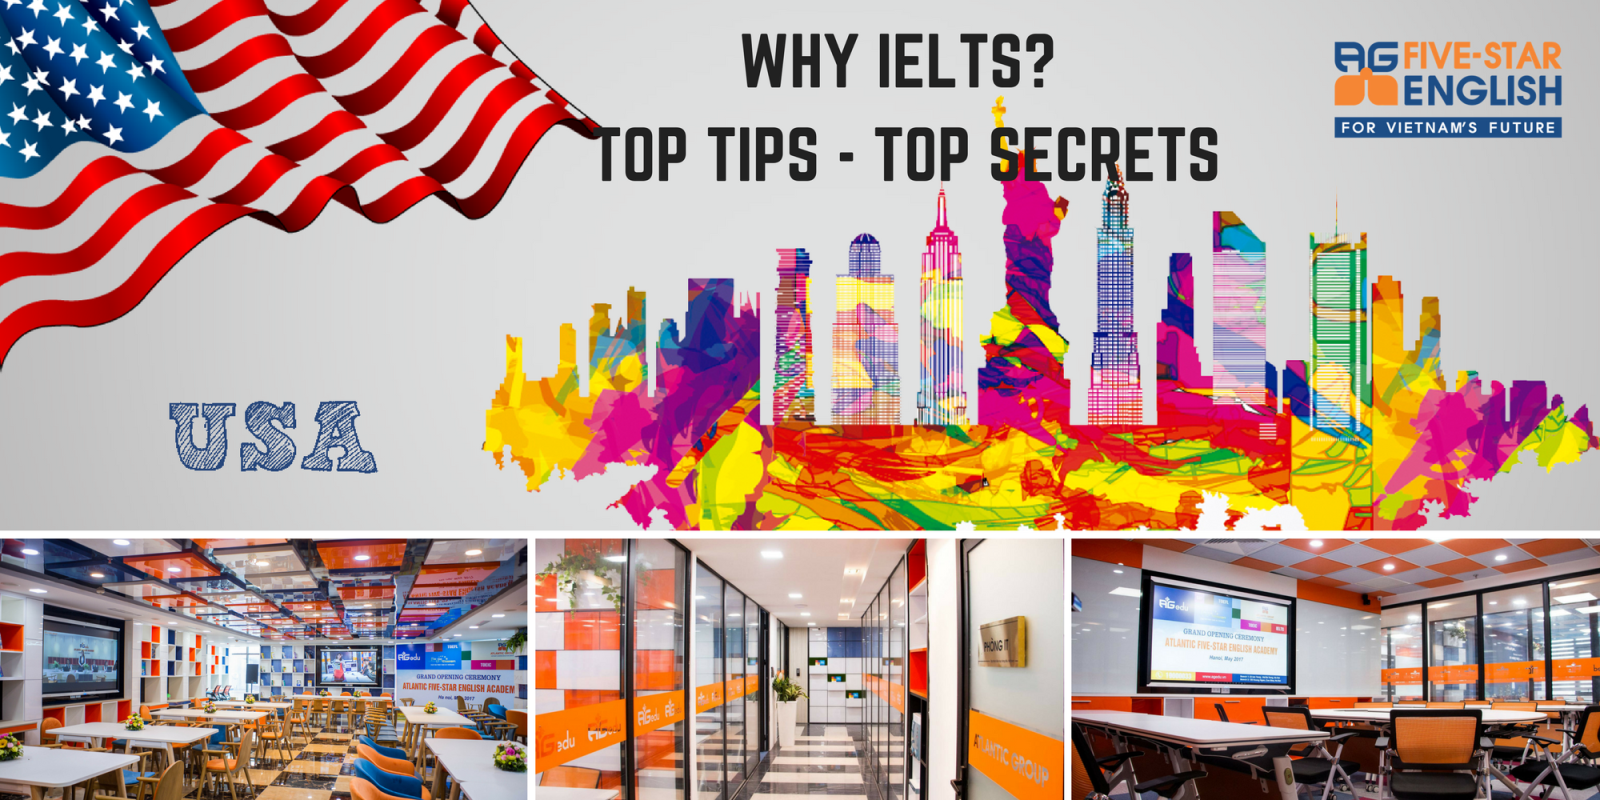 WHY IELTS - TOP TIPS